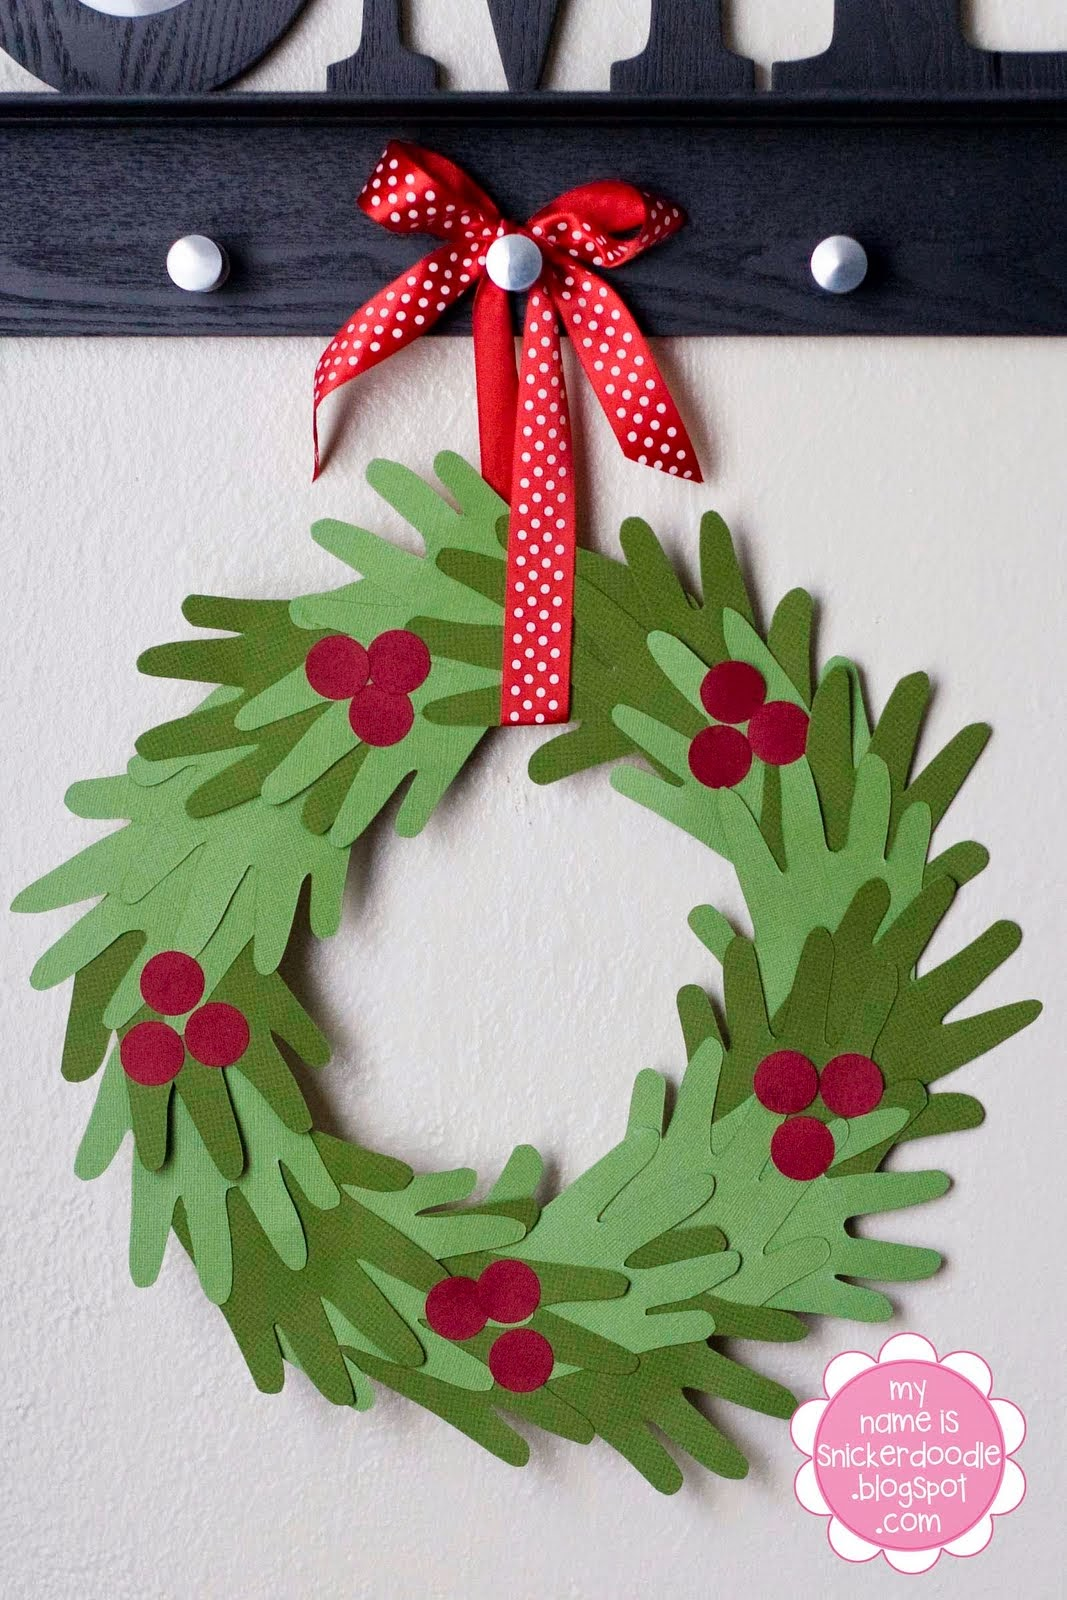 Christmas Pictures To Print.Kids Hand Print Christmas Wreath Tutorial My Name Is